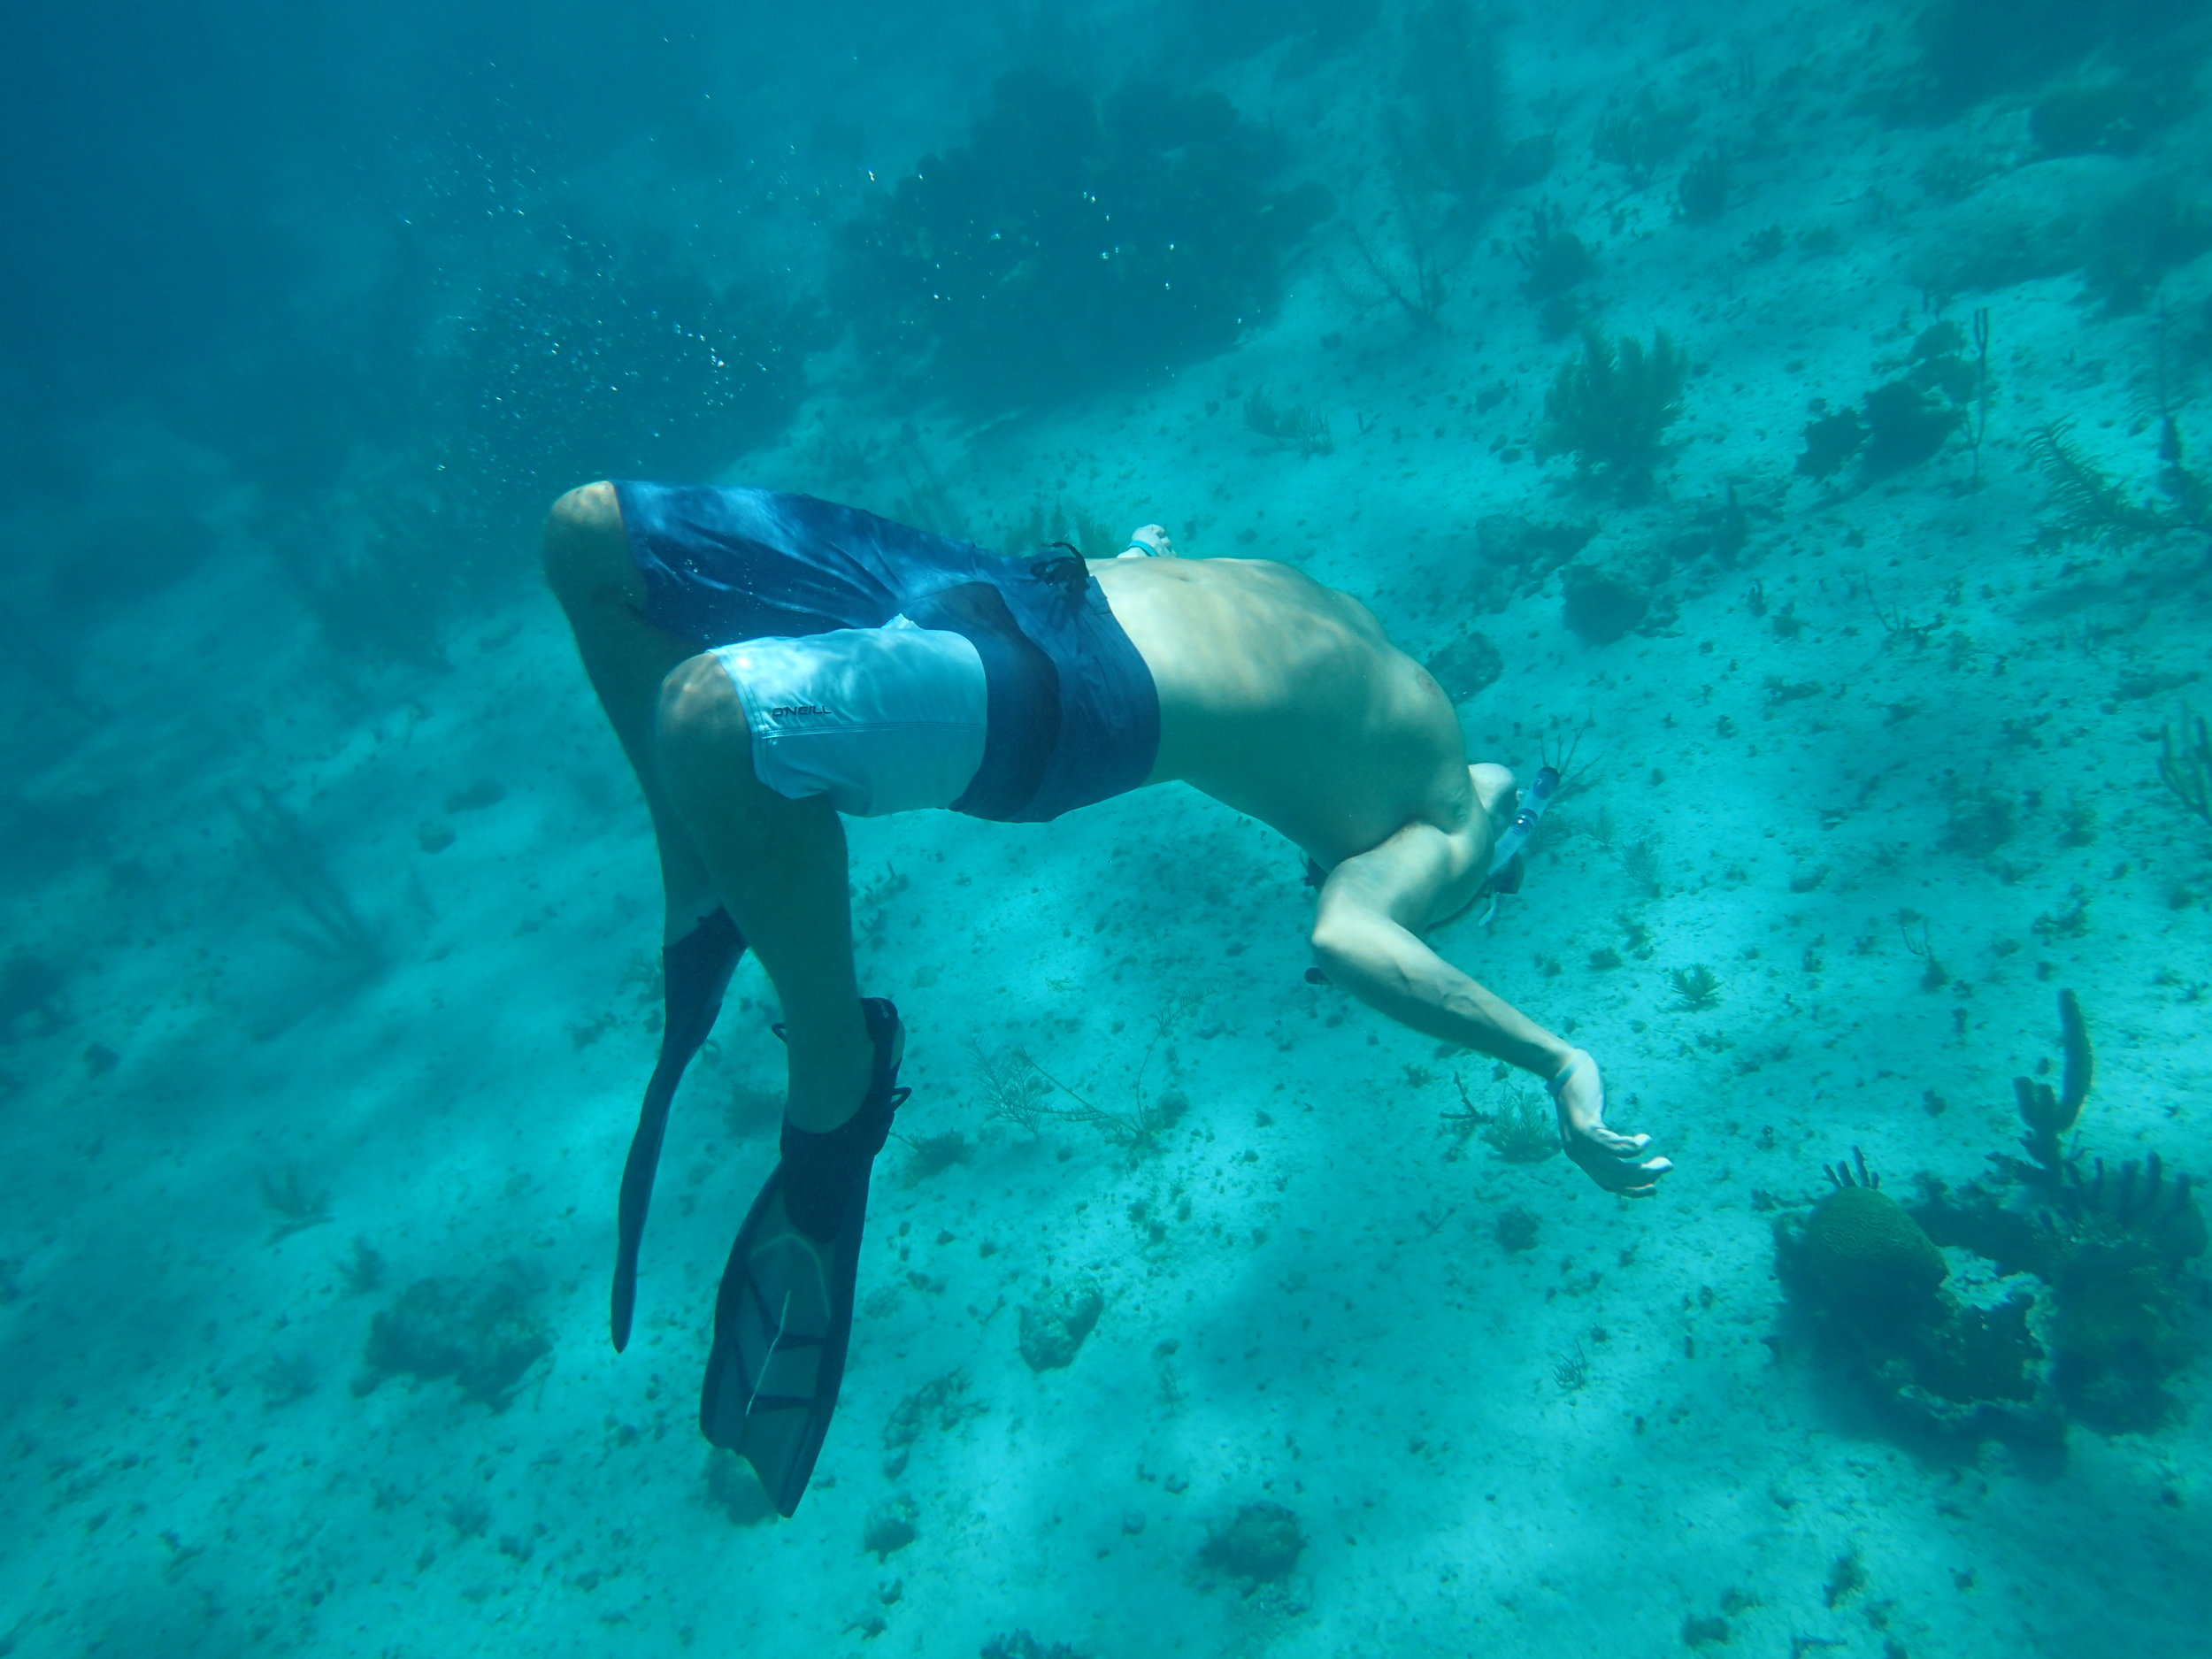 Exploring the reef is impactful - many people are surprised that learning to identify fish makes them feel connected